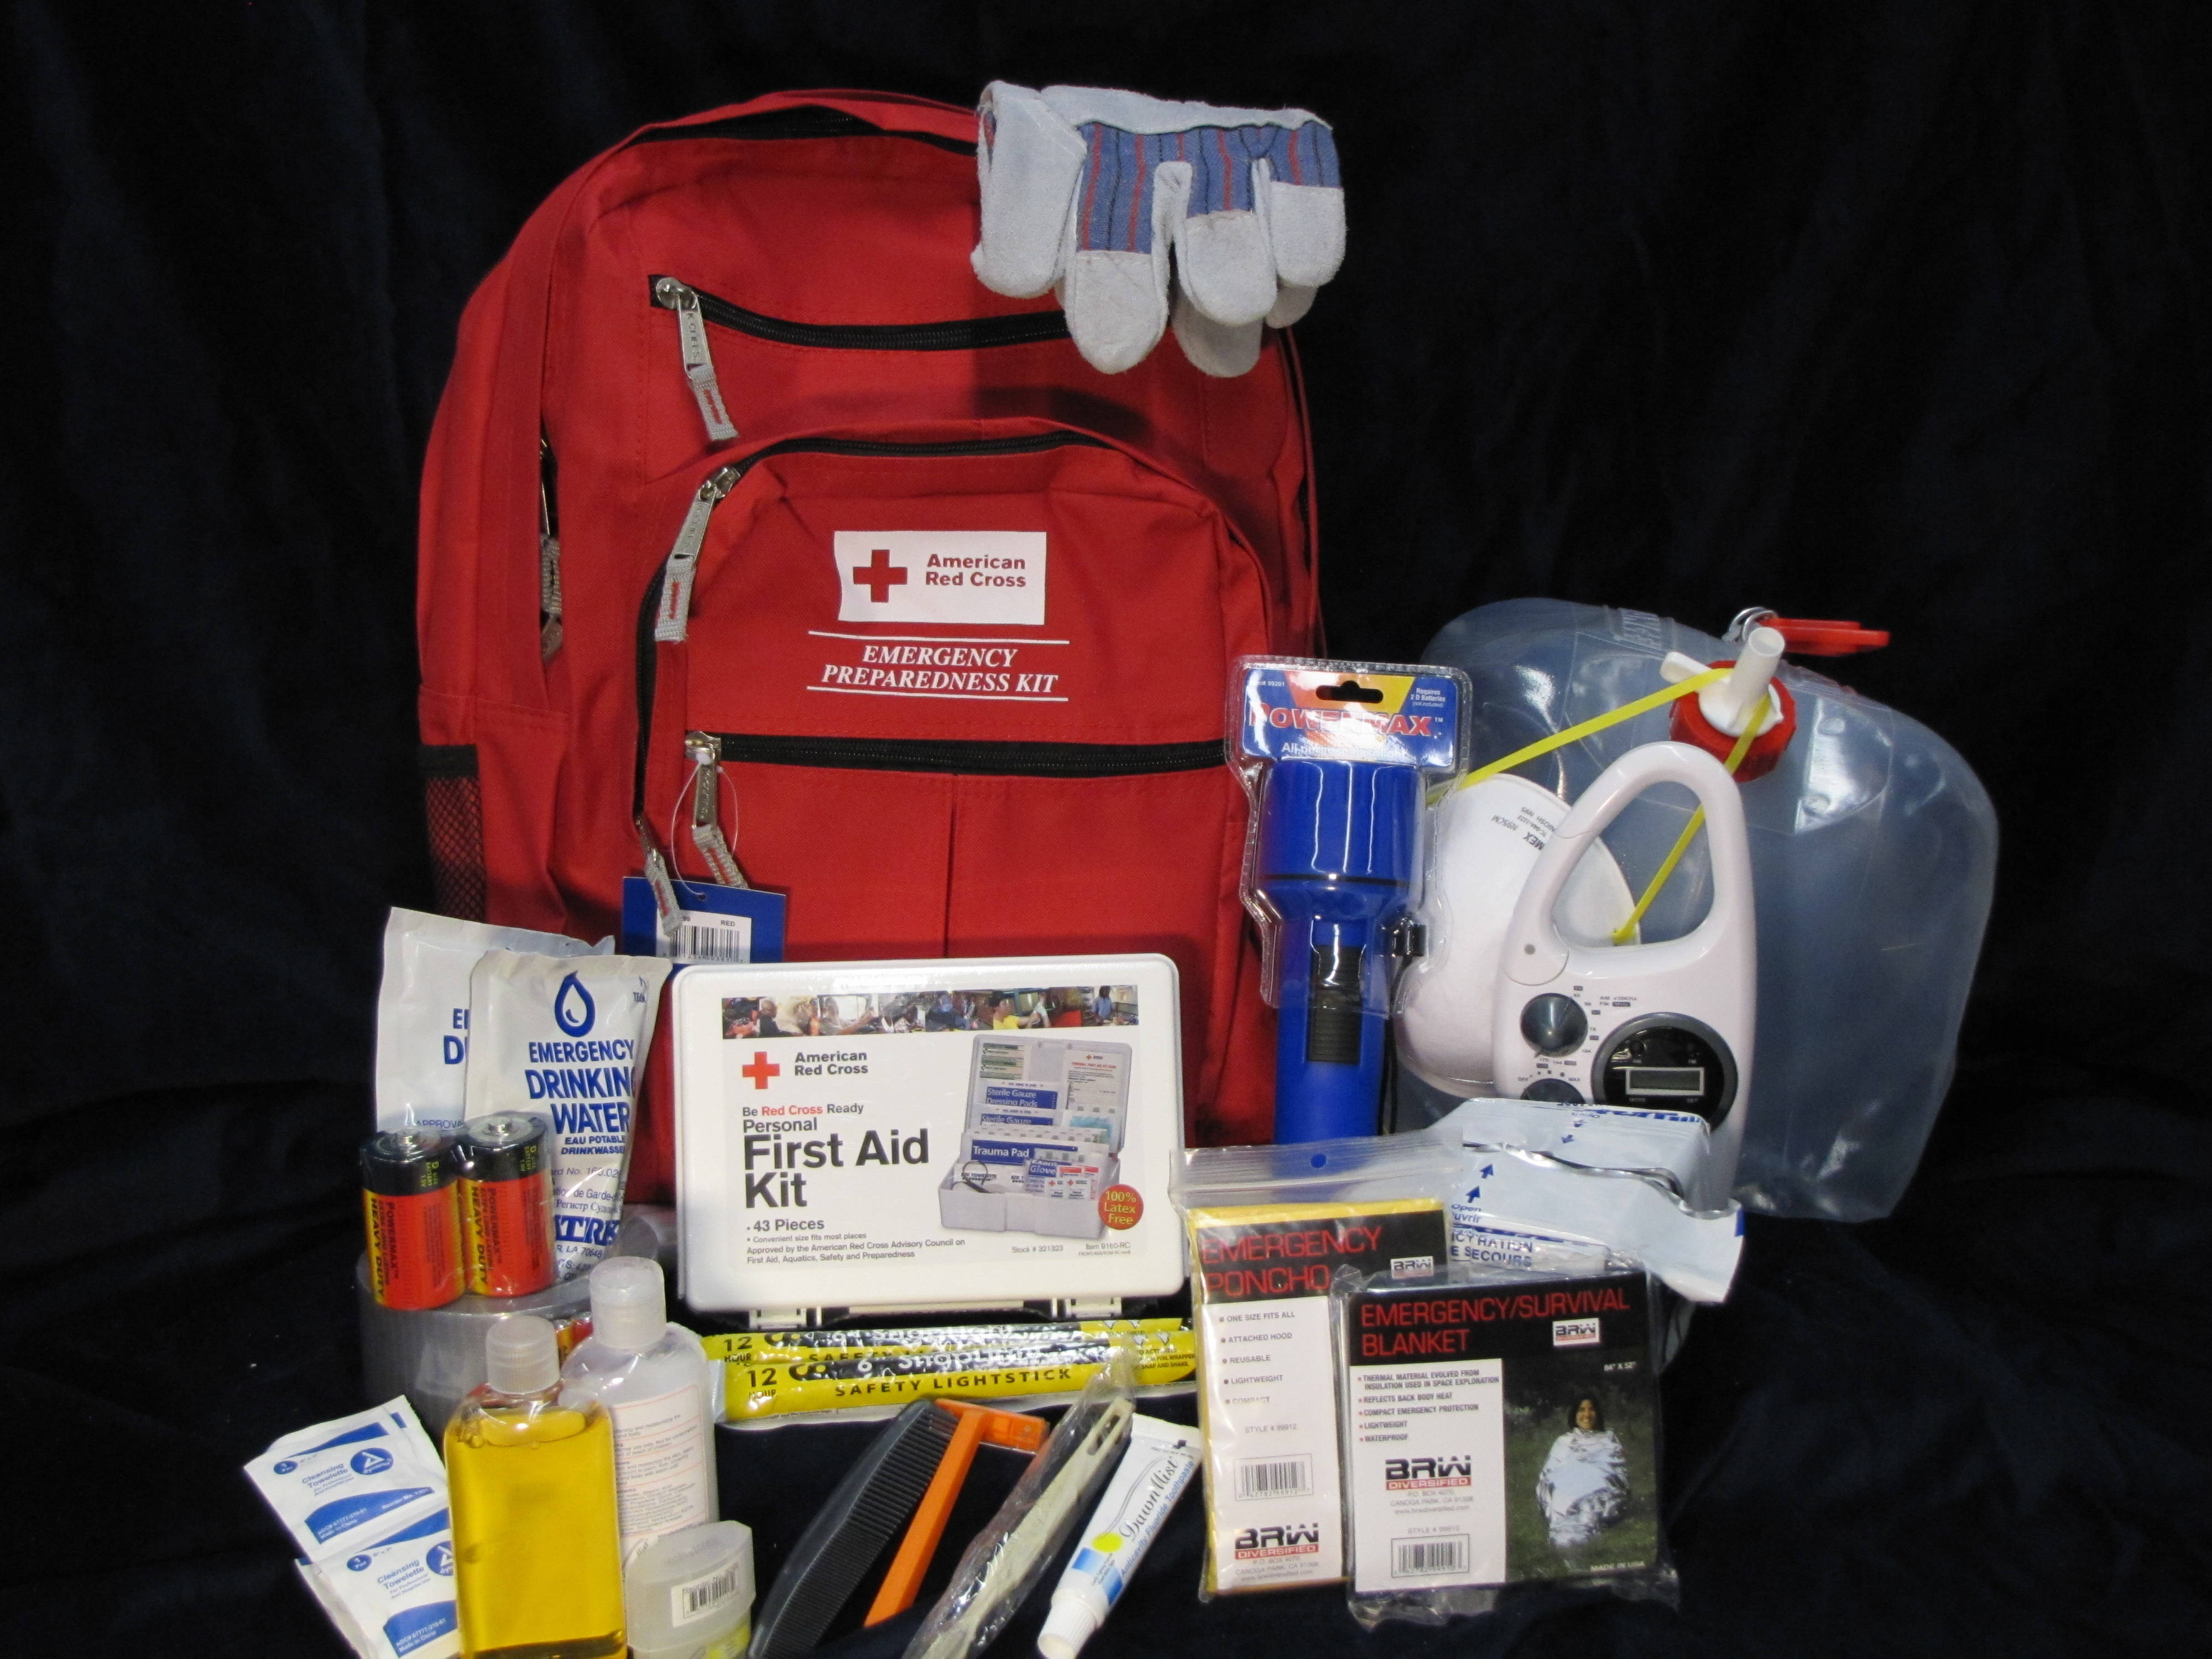 Wisconsin Red Cross volunteers respond to national tragedies